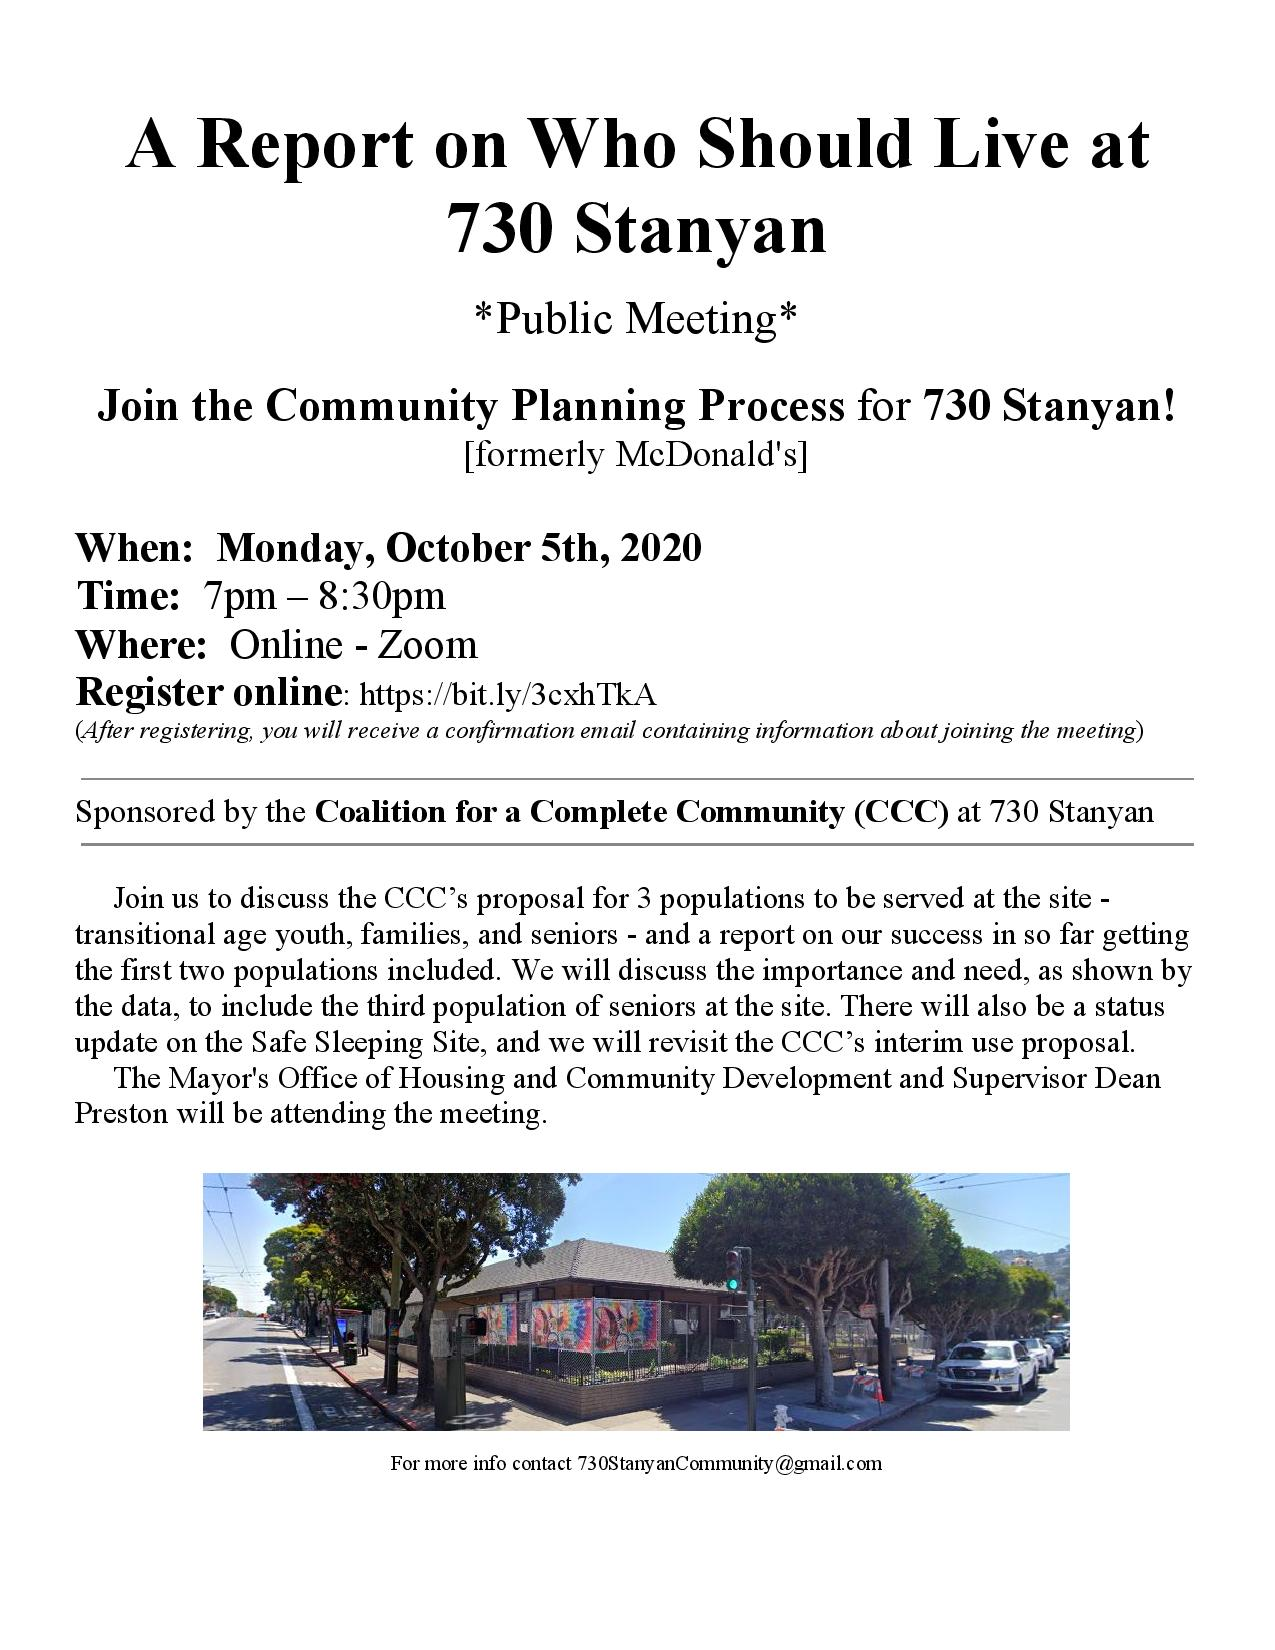 Oct 5th CCC Community Meeting Flyer